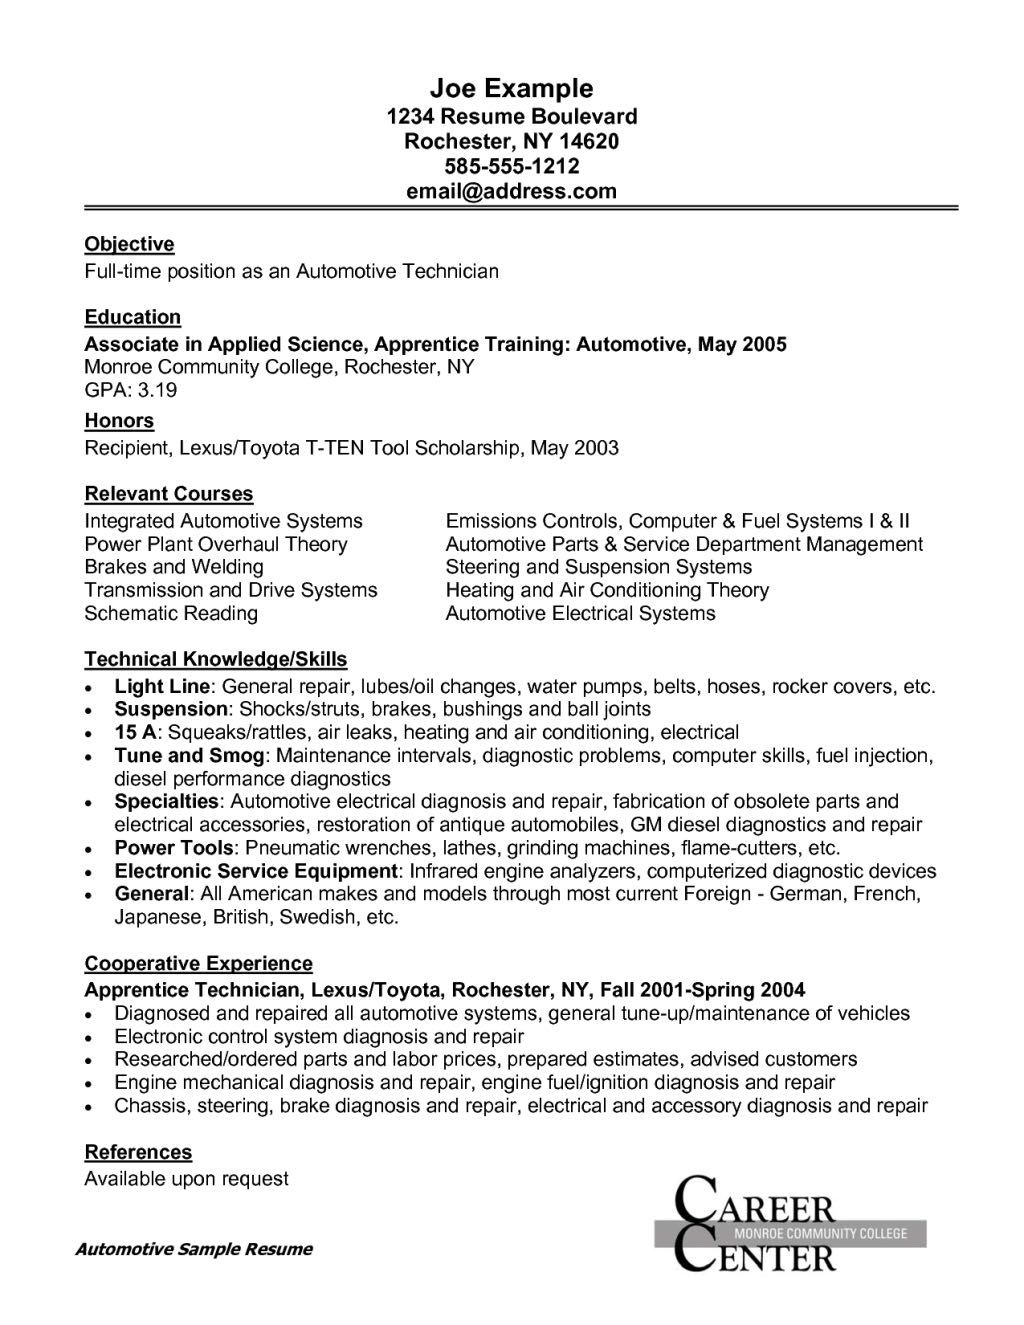 Automotive Technician Resume Objective Cover Letter Sample For Banking Internship Resume Format